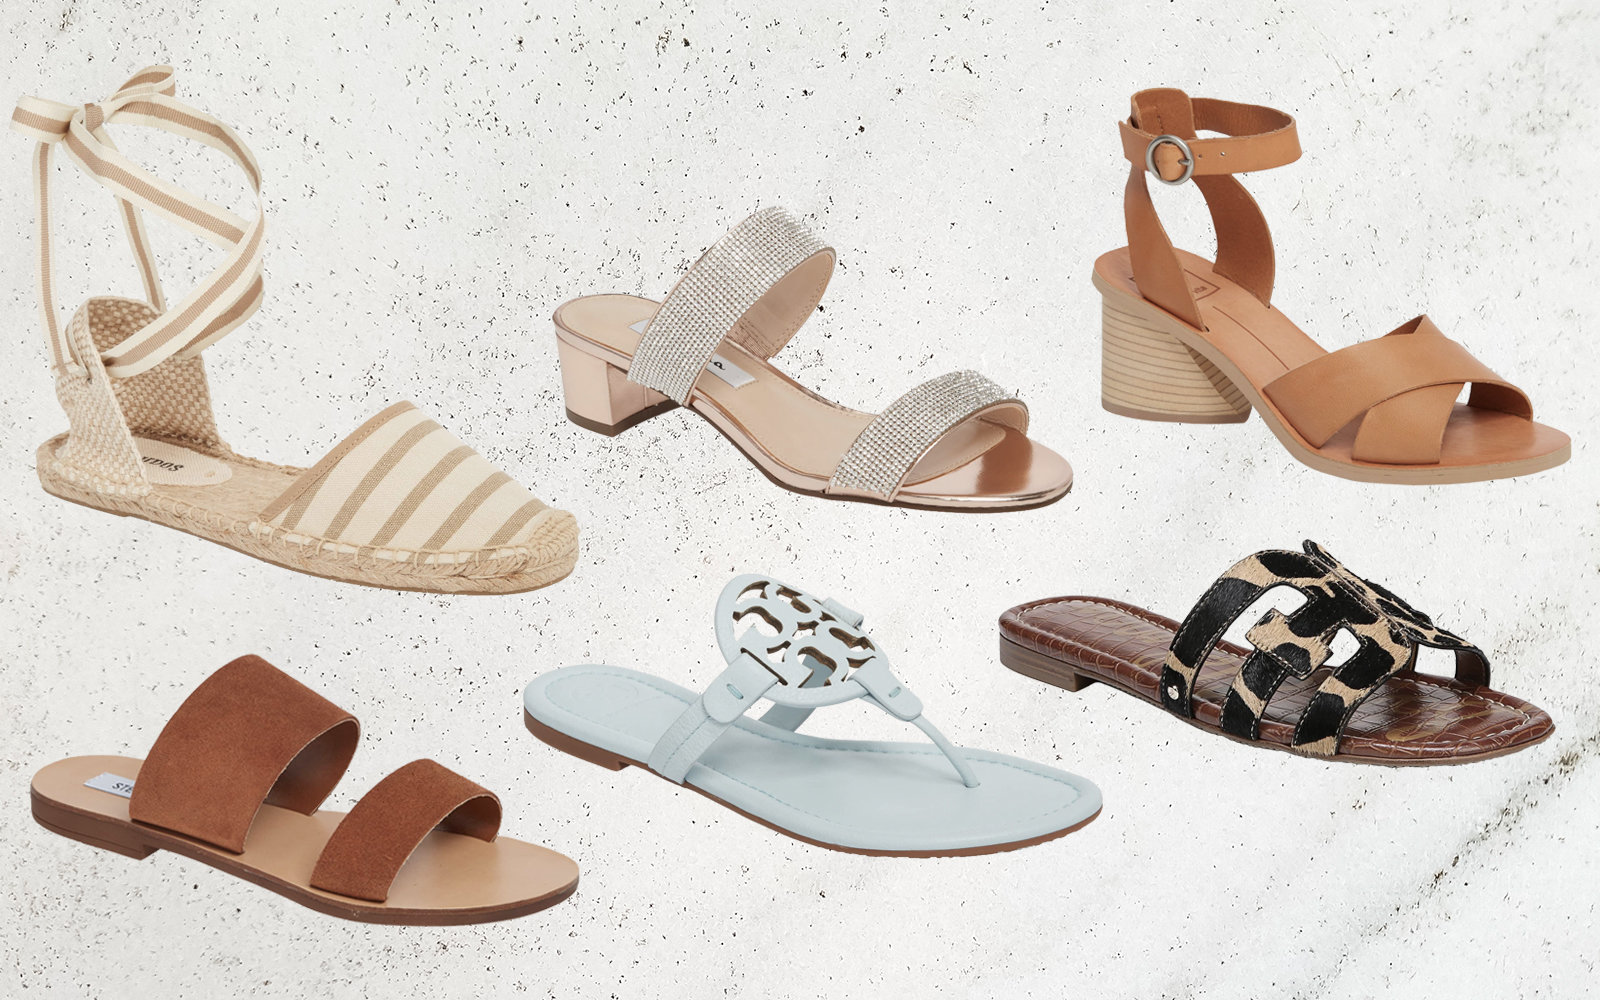 527927c0778d4 The Best Sandals from Nordstrom s Huge Summer Sale